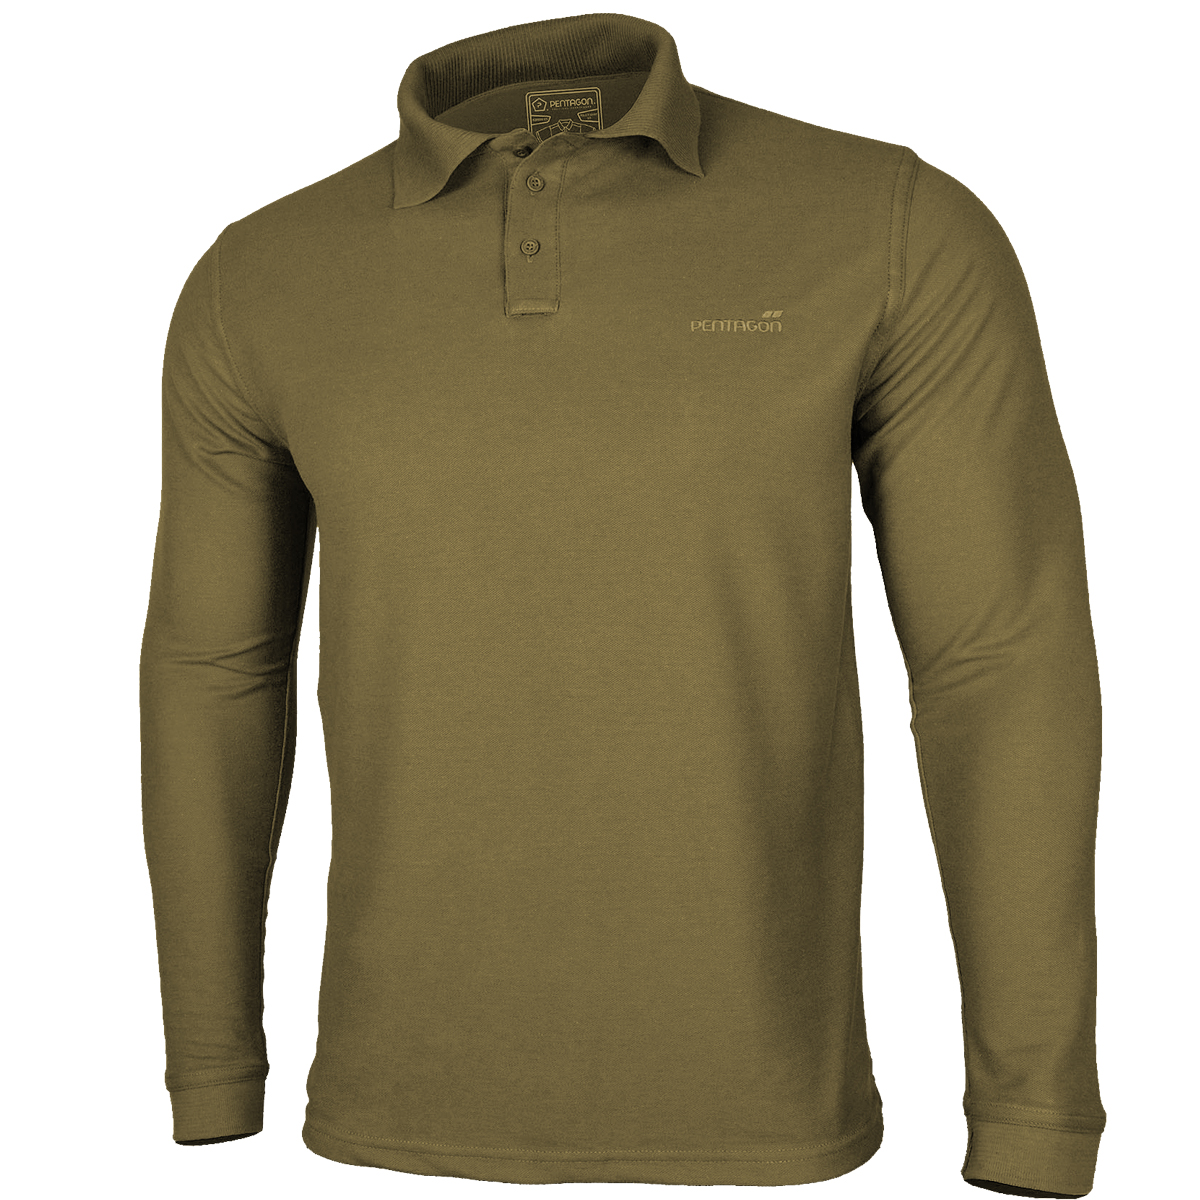 Details about Pentagon Polo 2.0 Shirt Long Sleeve Army Combat Tactical Top  Casual Wear Coyote 7574838840c